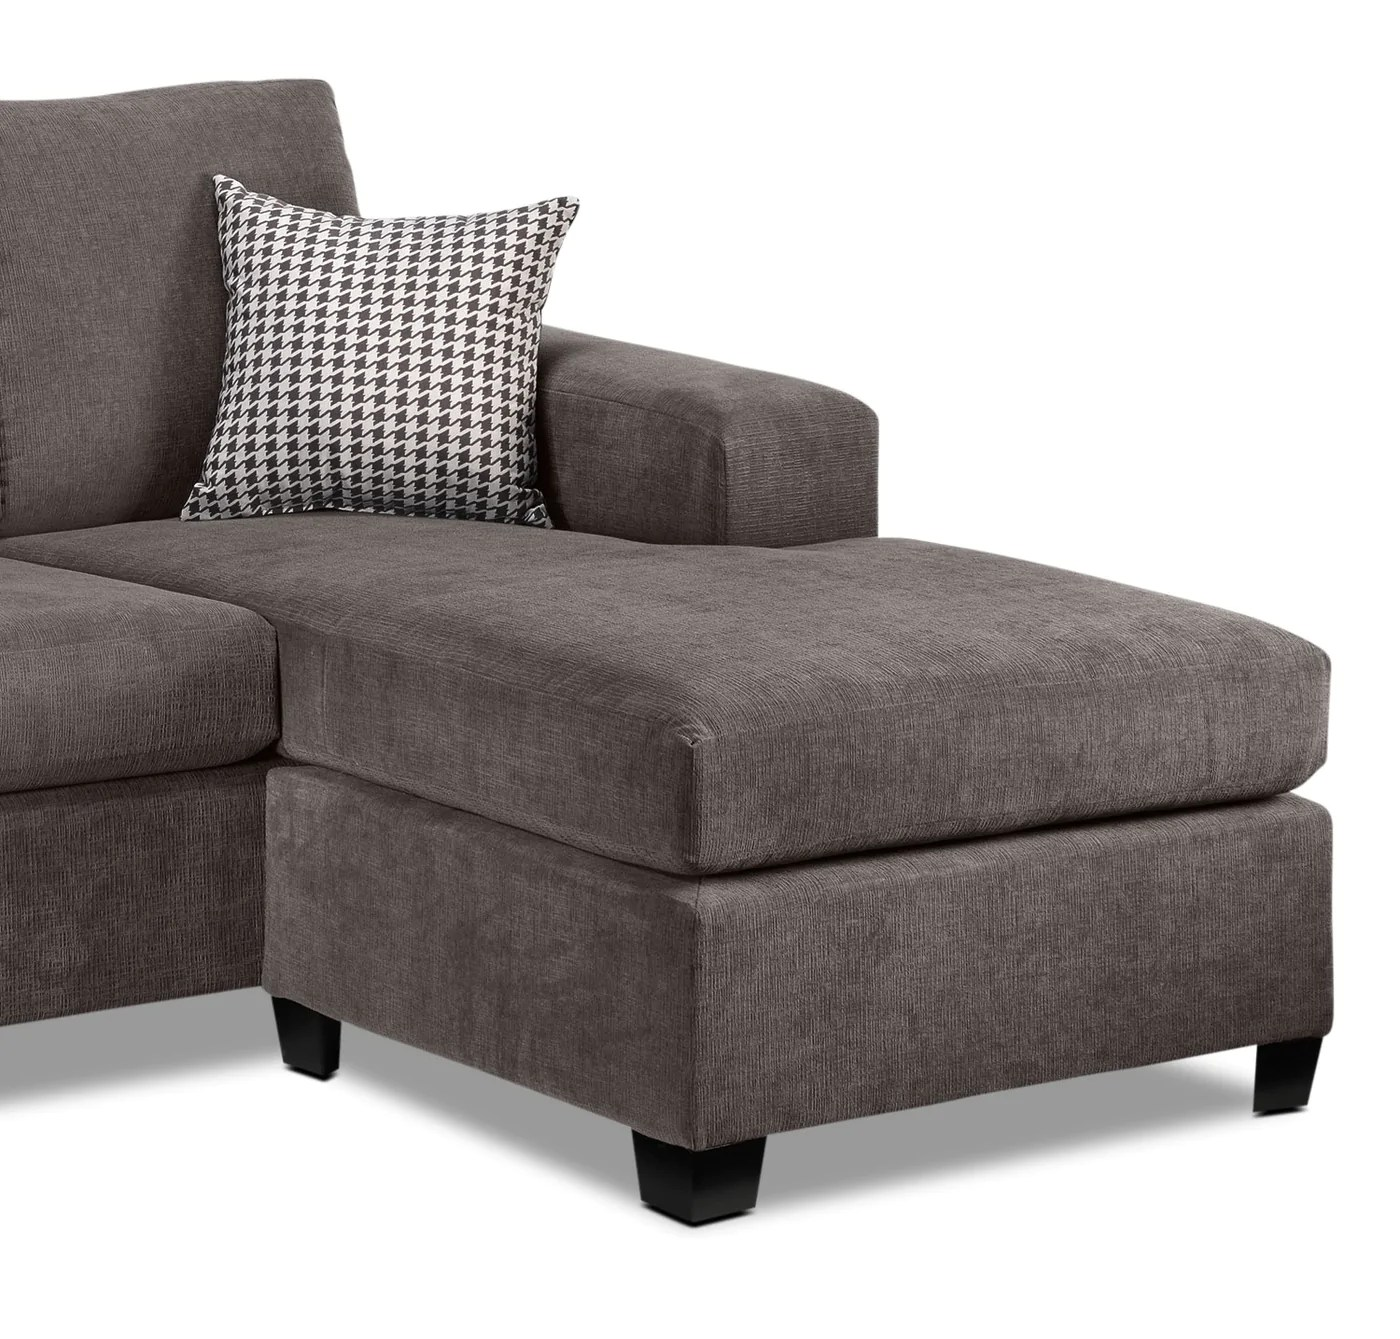 Couches Edmonton Leons Sofa Beds Edmonton Baci Living Room